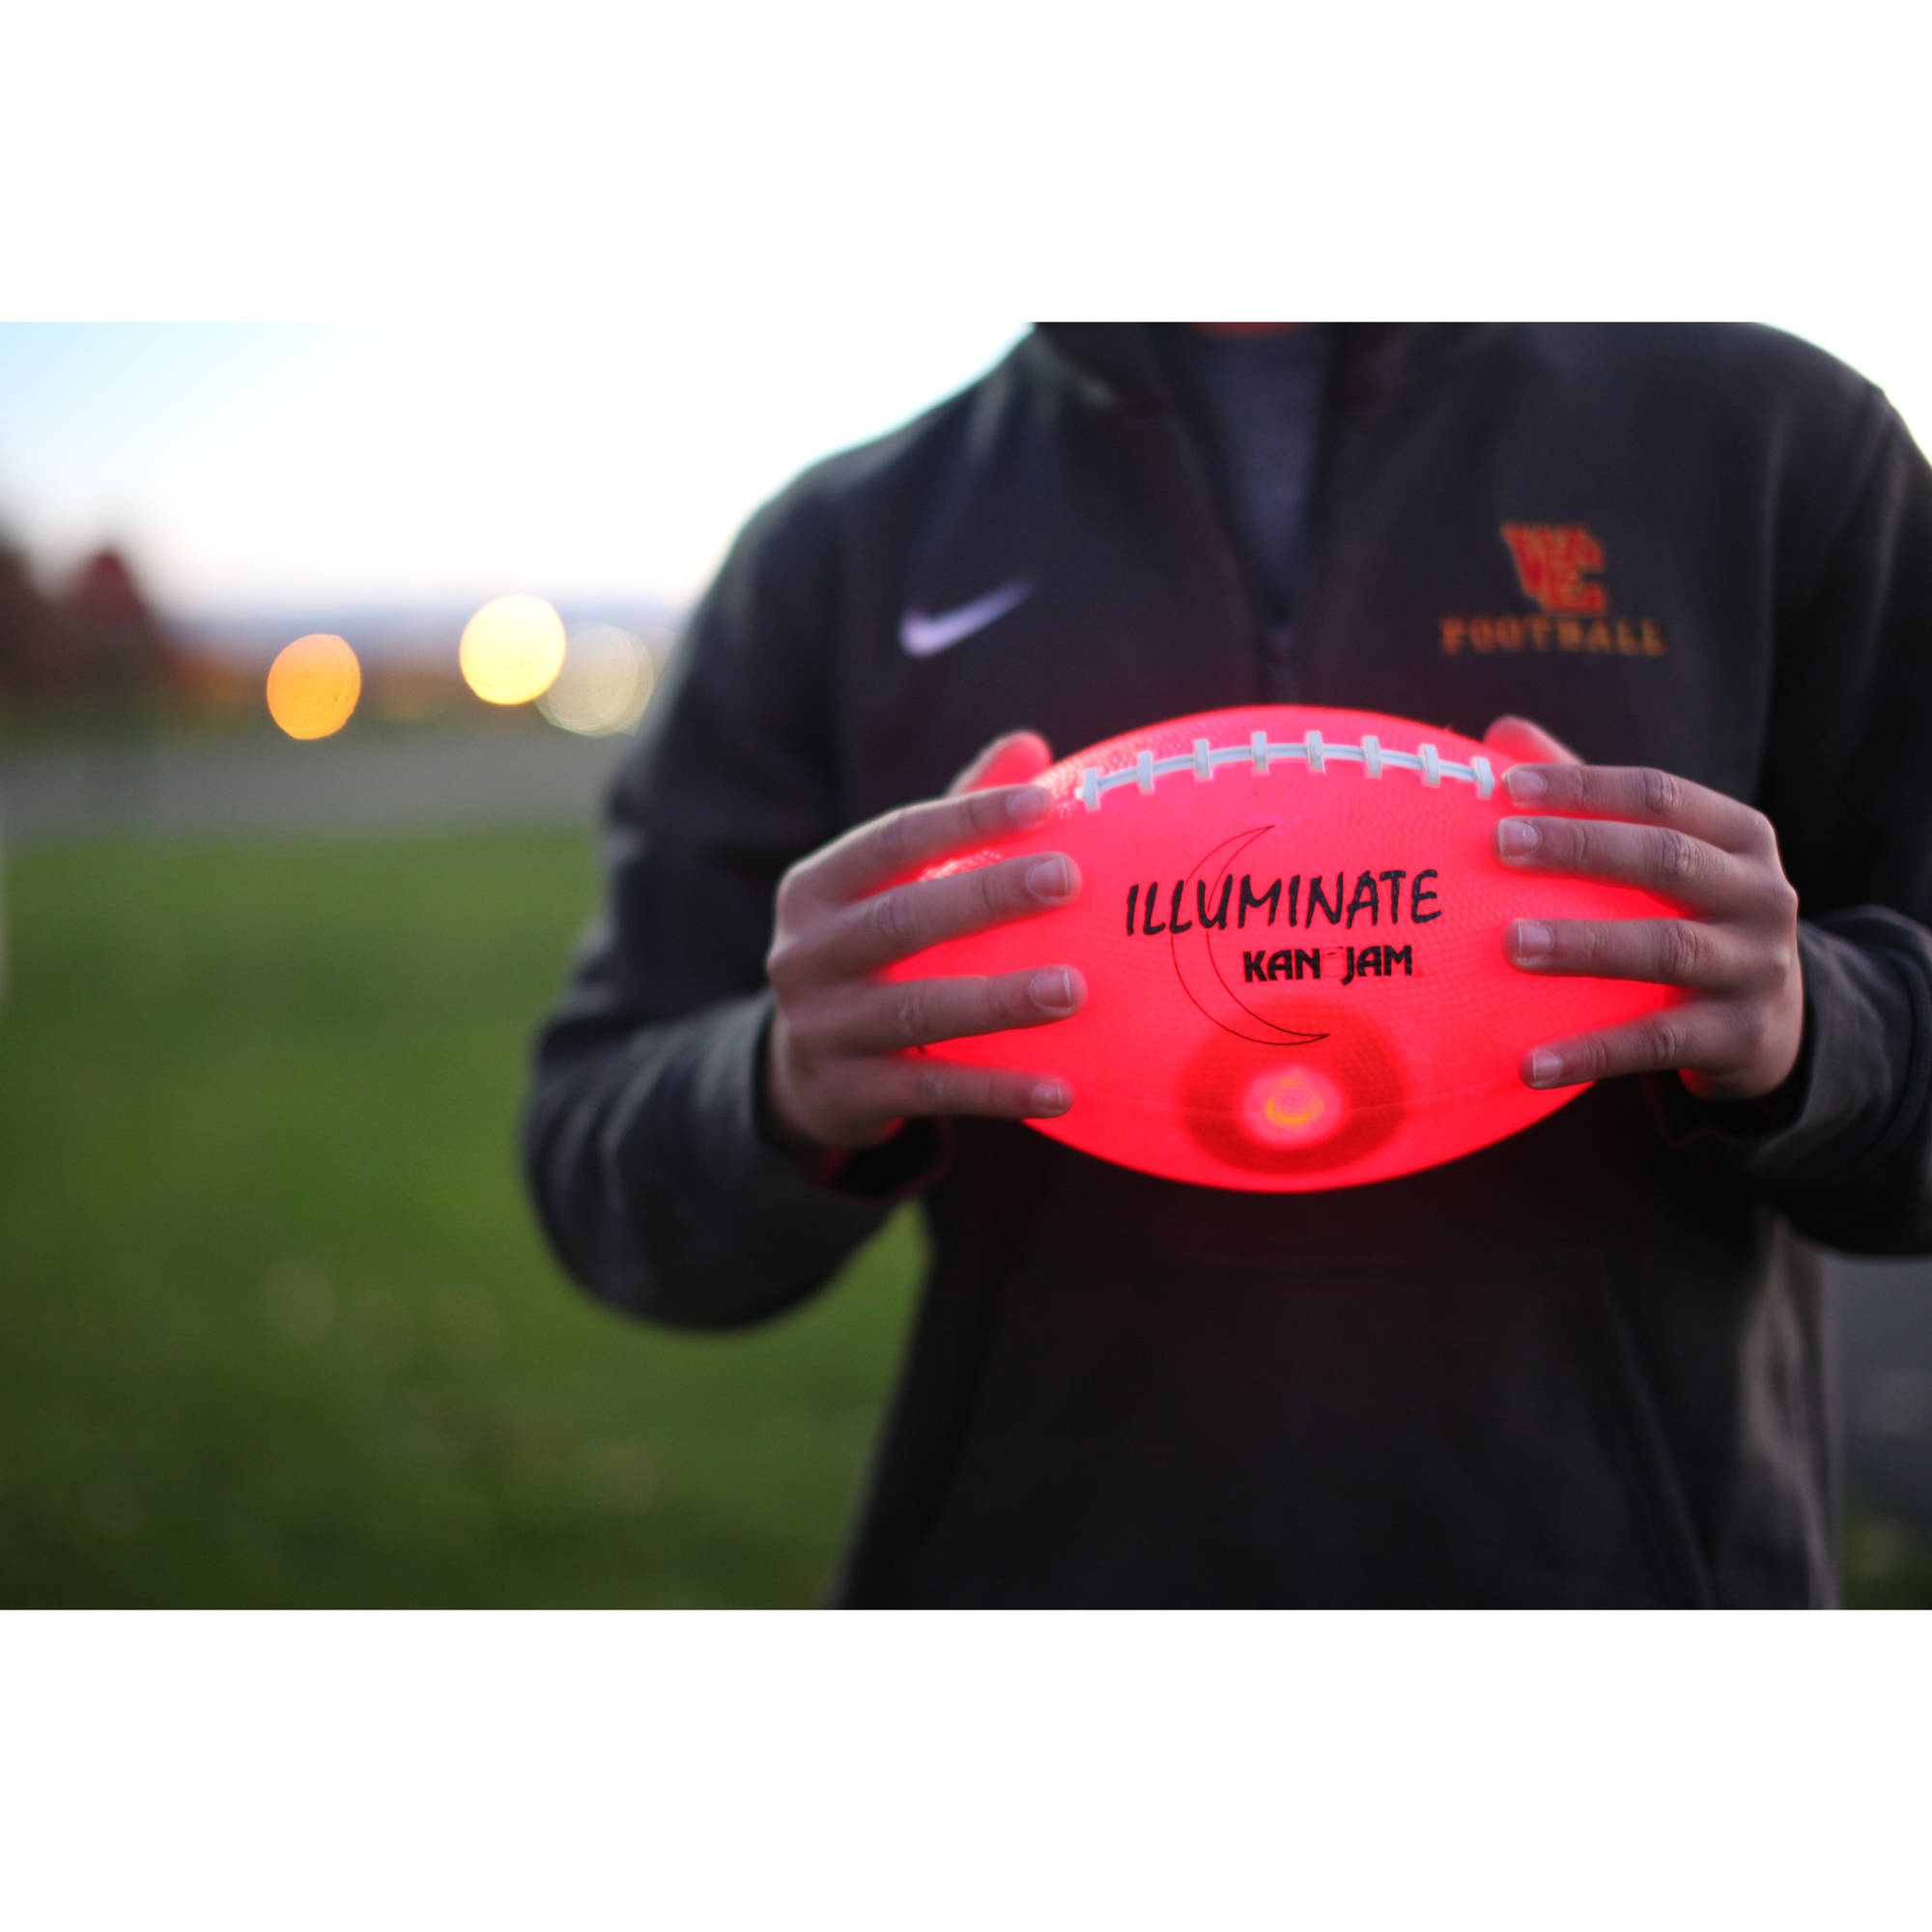 Kan Jam Illuminate LED Football by Kan Jam